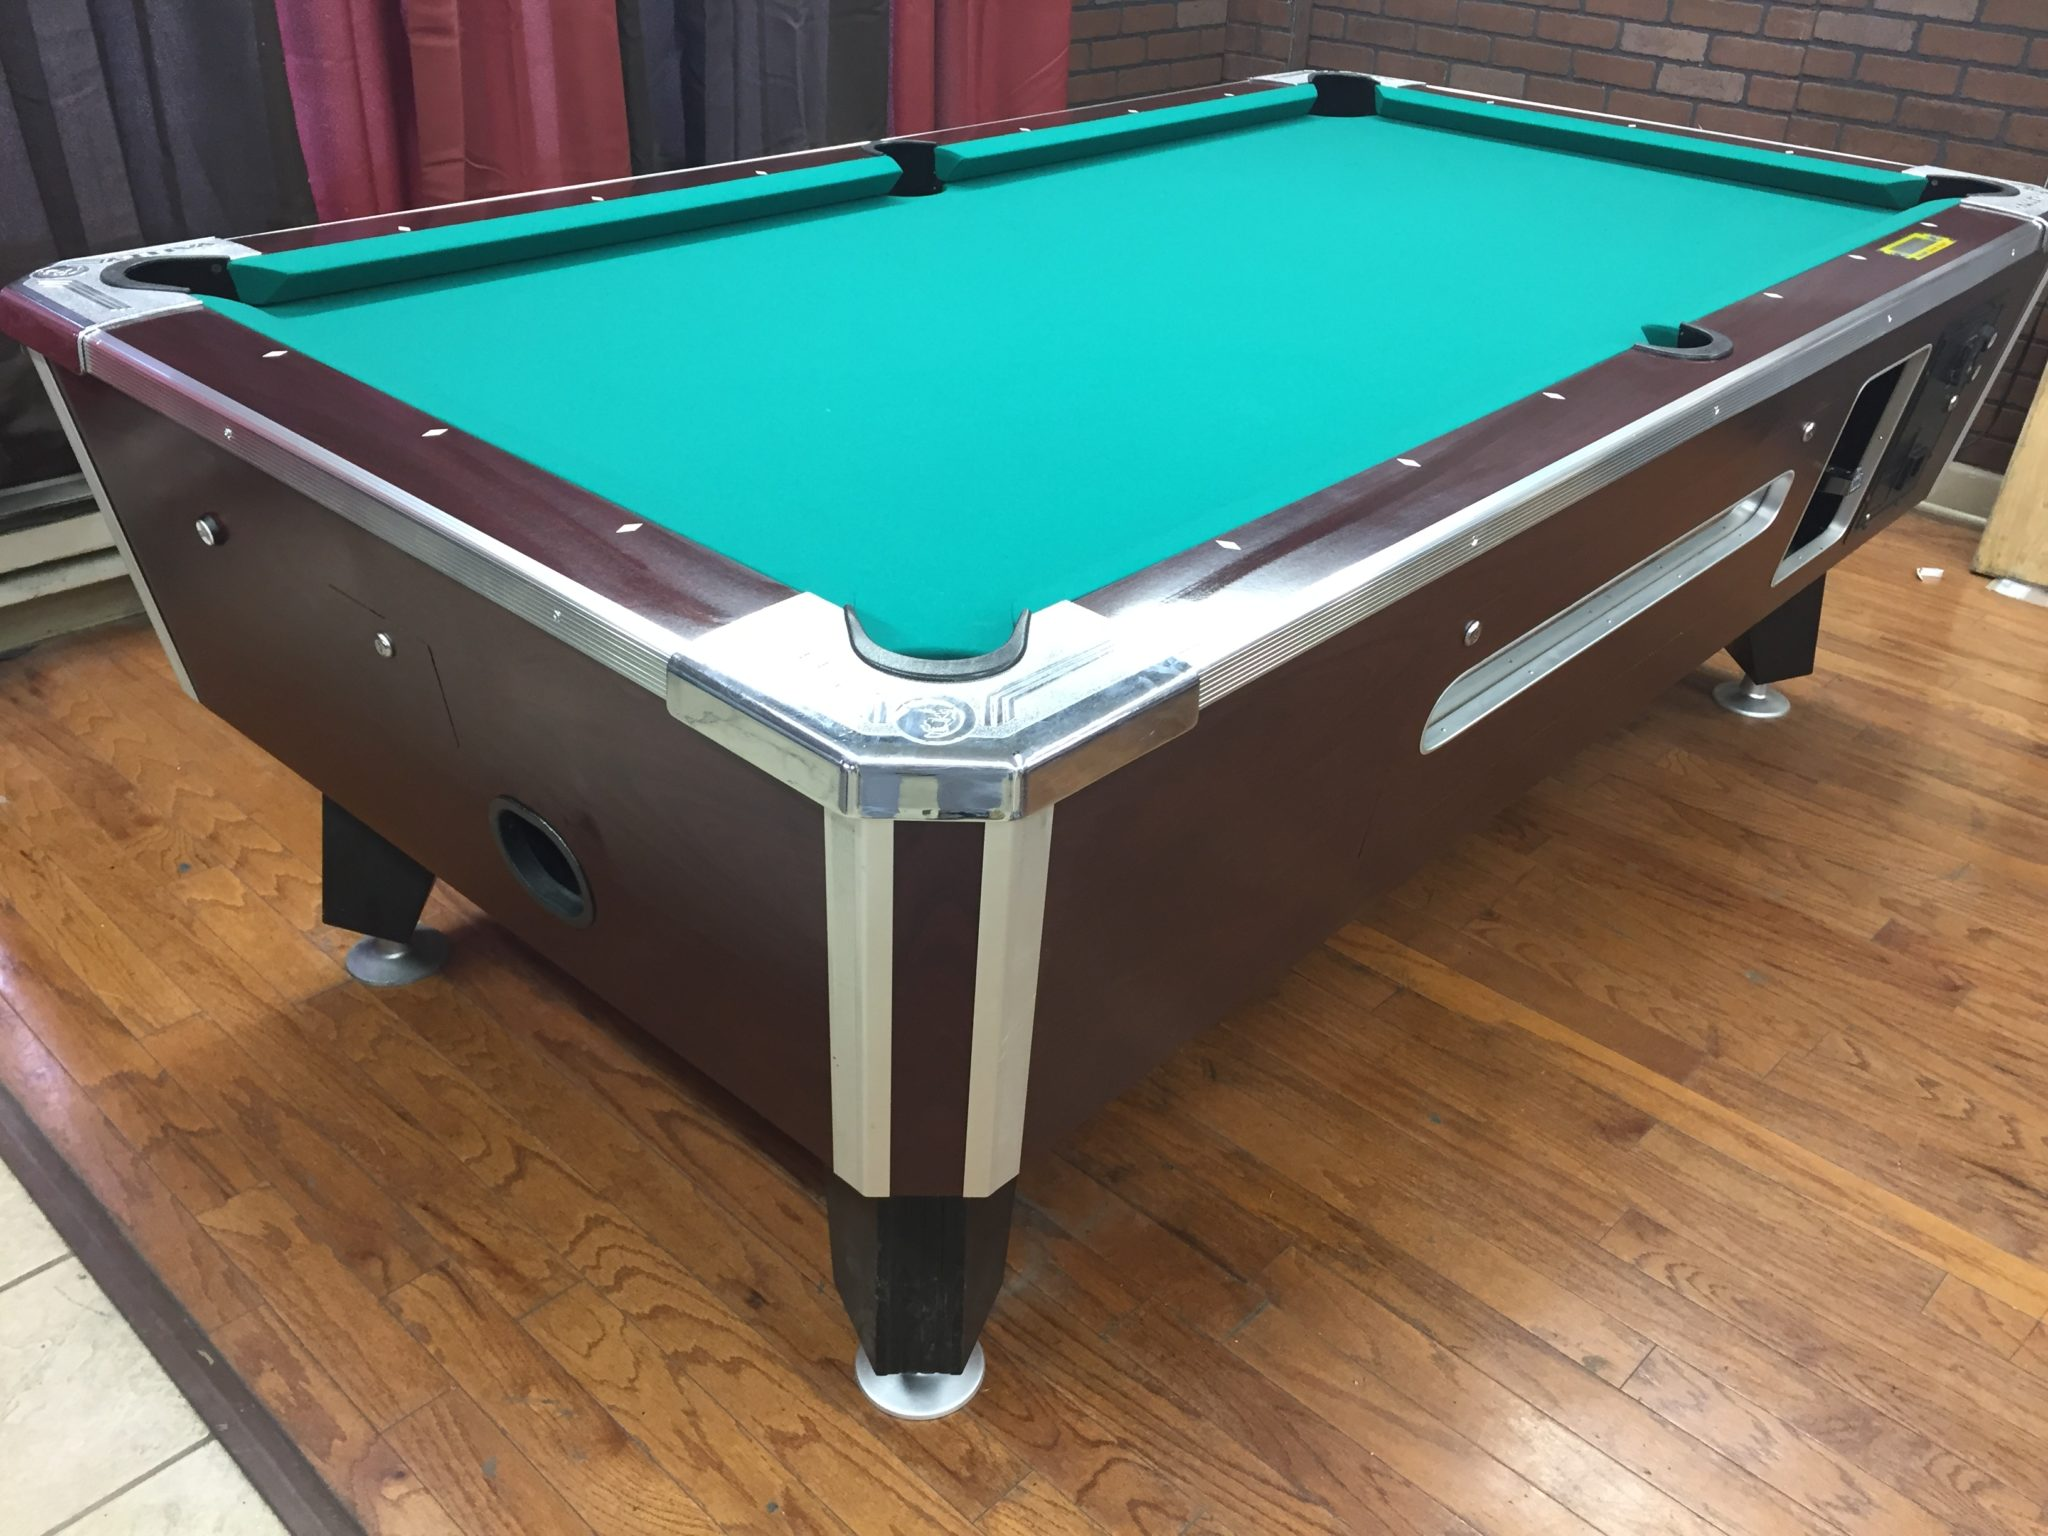 Used Coin Operated Pool Tables Trezor Release Date - Coin operated pool table parts